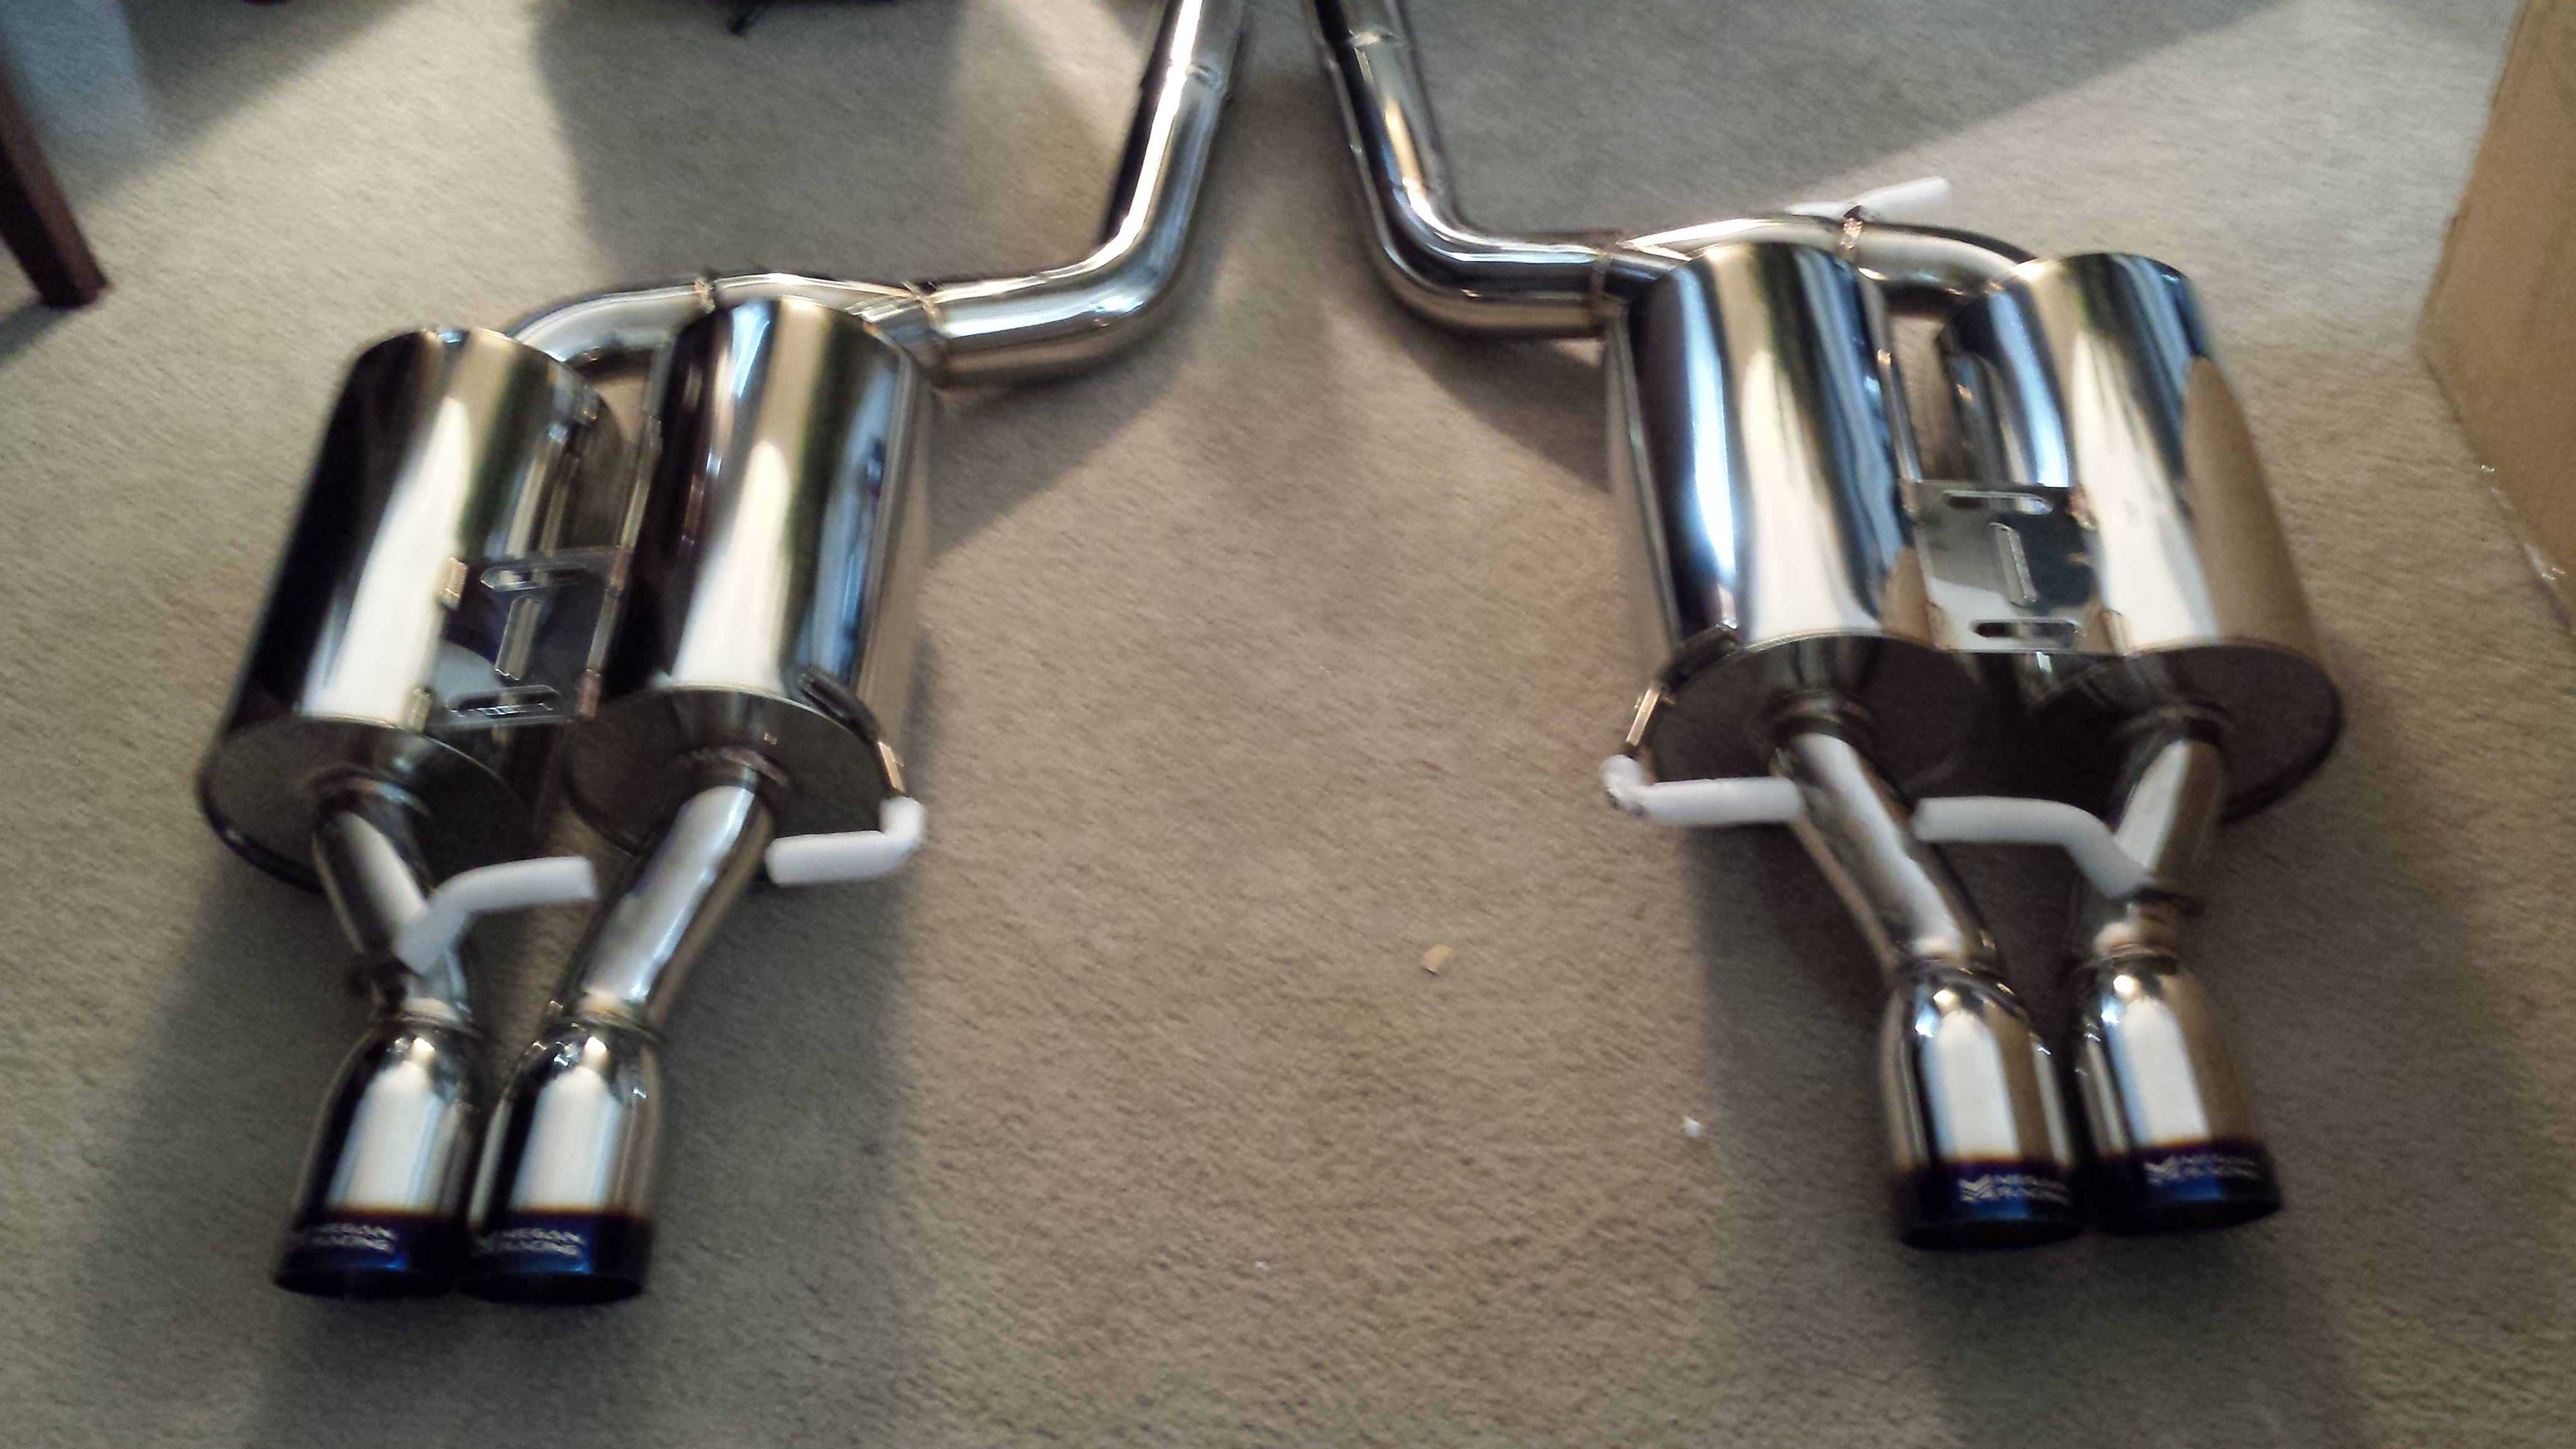 E60 M5 Exhaust From Oem To Megan Oe Rs Catback My Experience Page 6 Bmw M5 Forum And M6 Forums